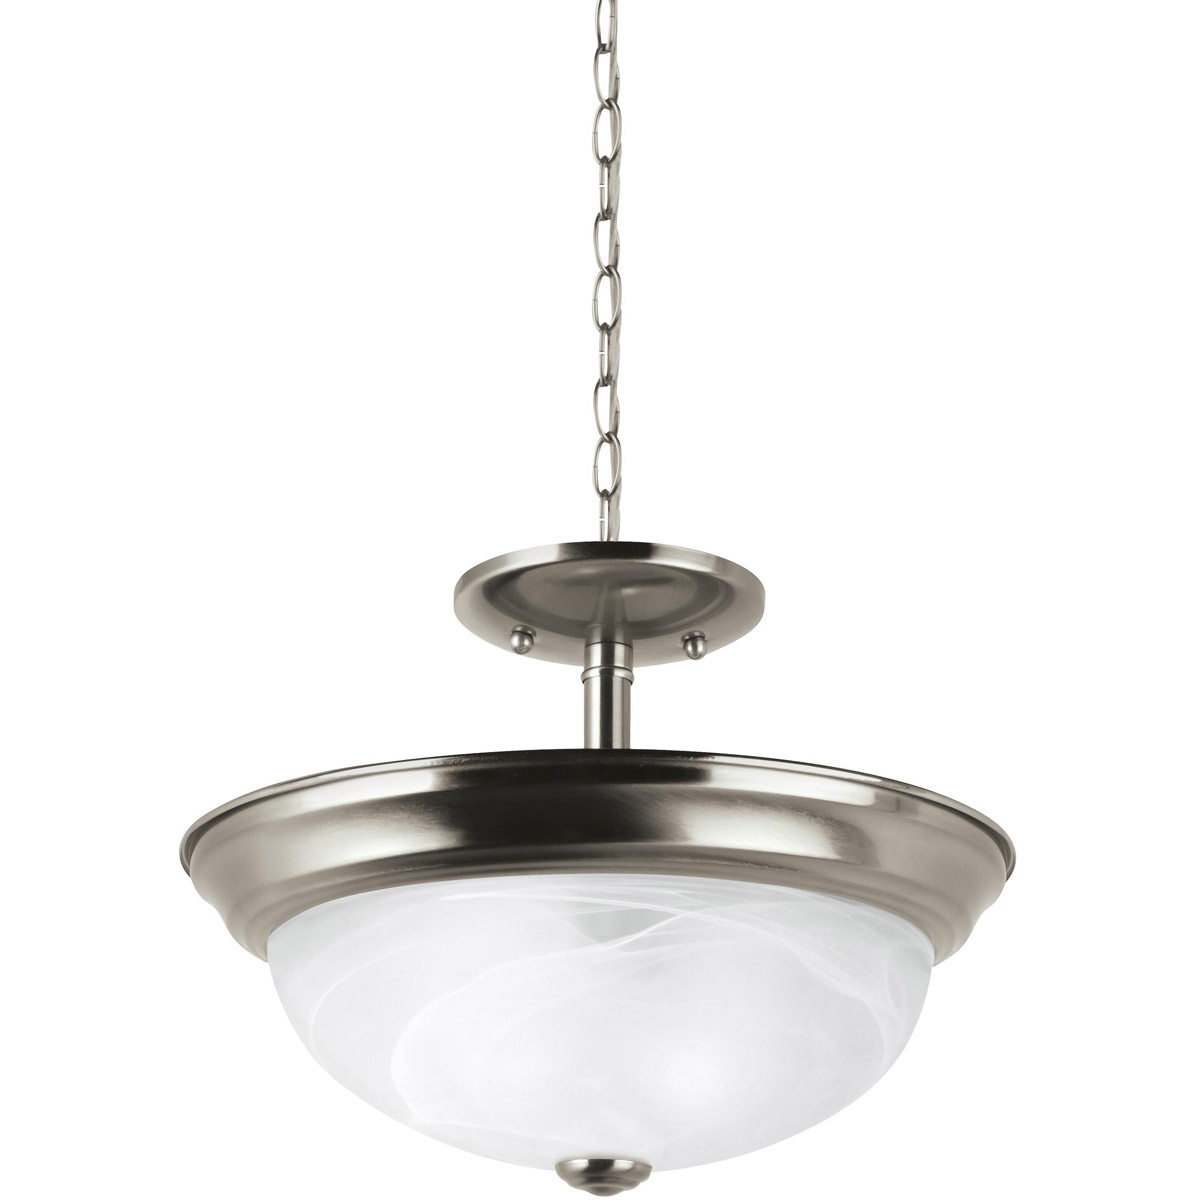 Sea Gull Lighting Windgate 2 Light Semi-Flush Mount in Brushed Nickel 77950-962